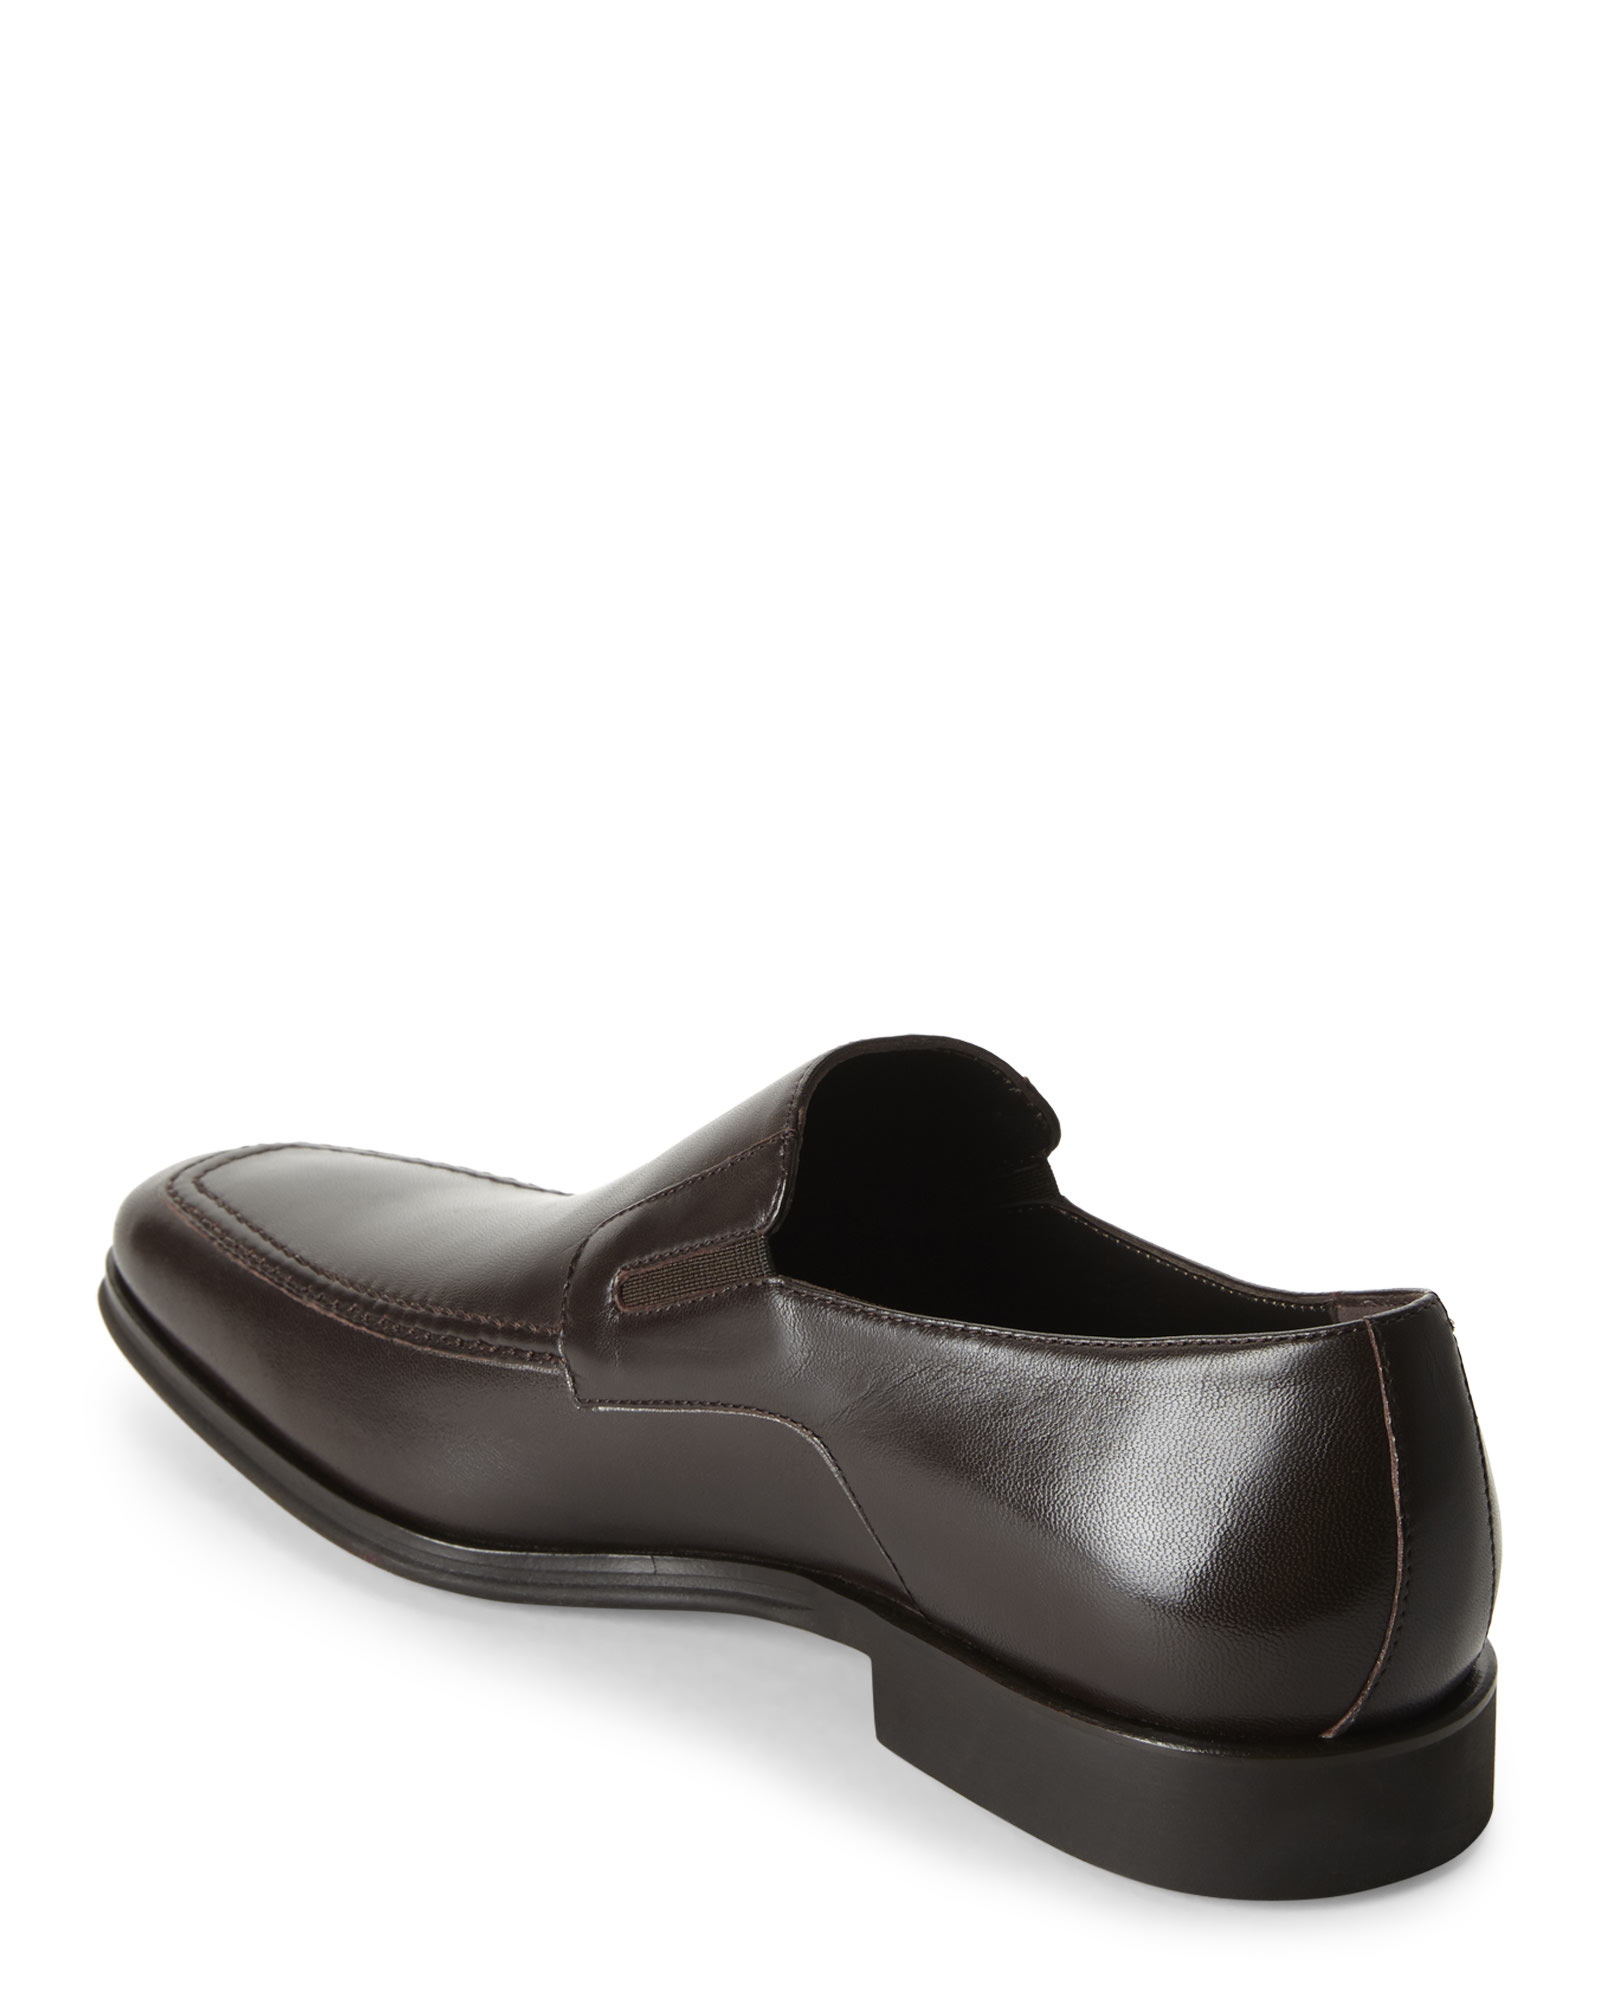 a572818c4f4ca Bruno Magli Chocolate Raging Slip On Dress Shoes in Brown for Men - Lyst